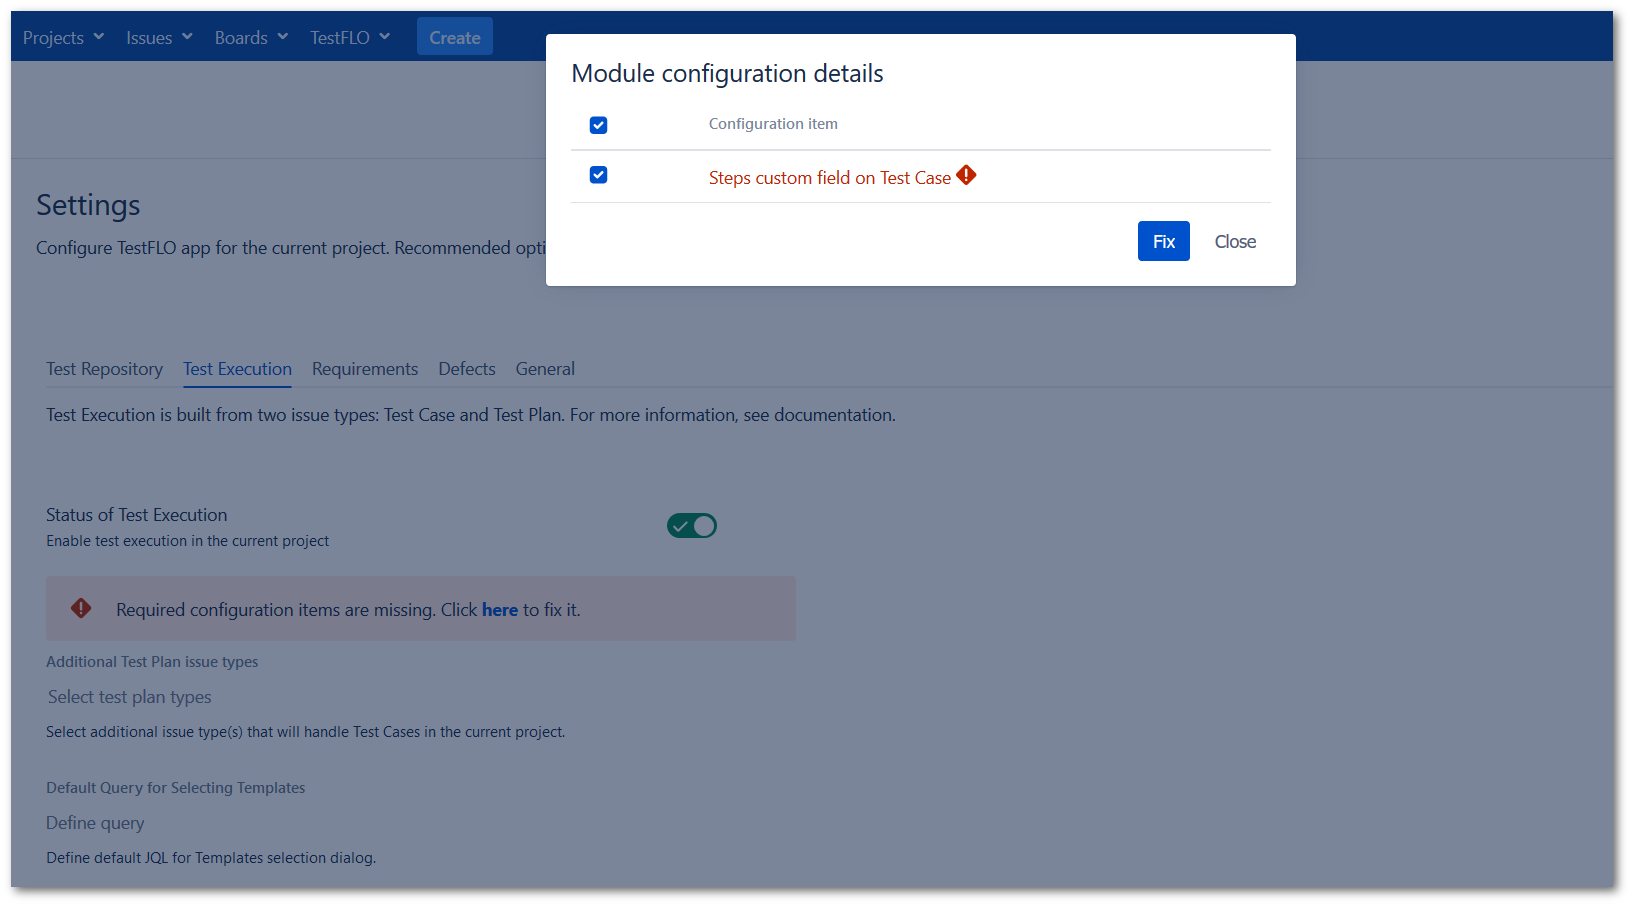 Validation message in the Test Execution tab